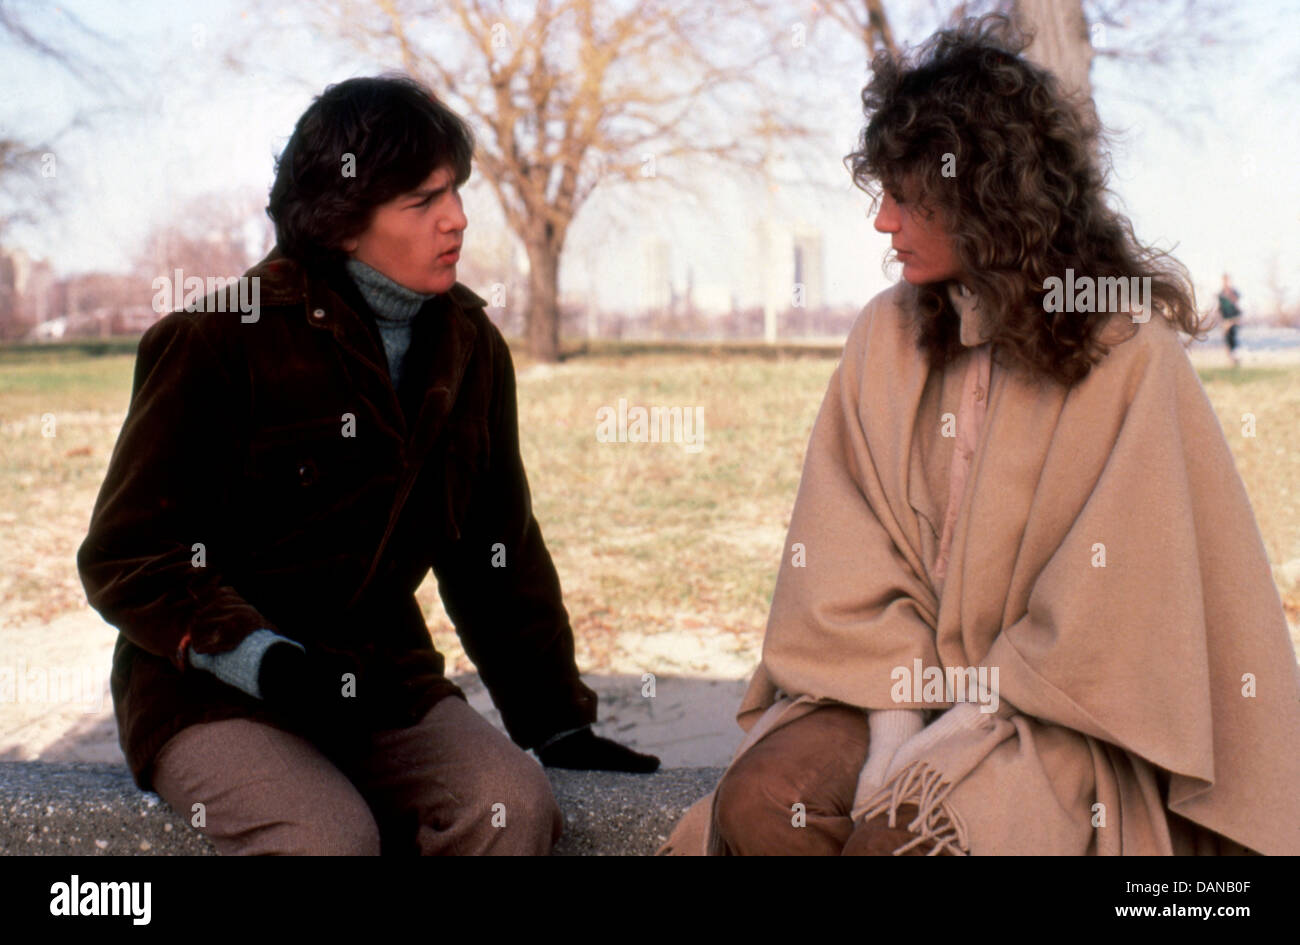 CLASS (1983) ANDREW MCCARTHY, JACQUELINE BISSET, LEWIS JOHN CARLINO (DIR) CLS 006 MOVIESTORE COLLECTION LTD - Stock Image